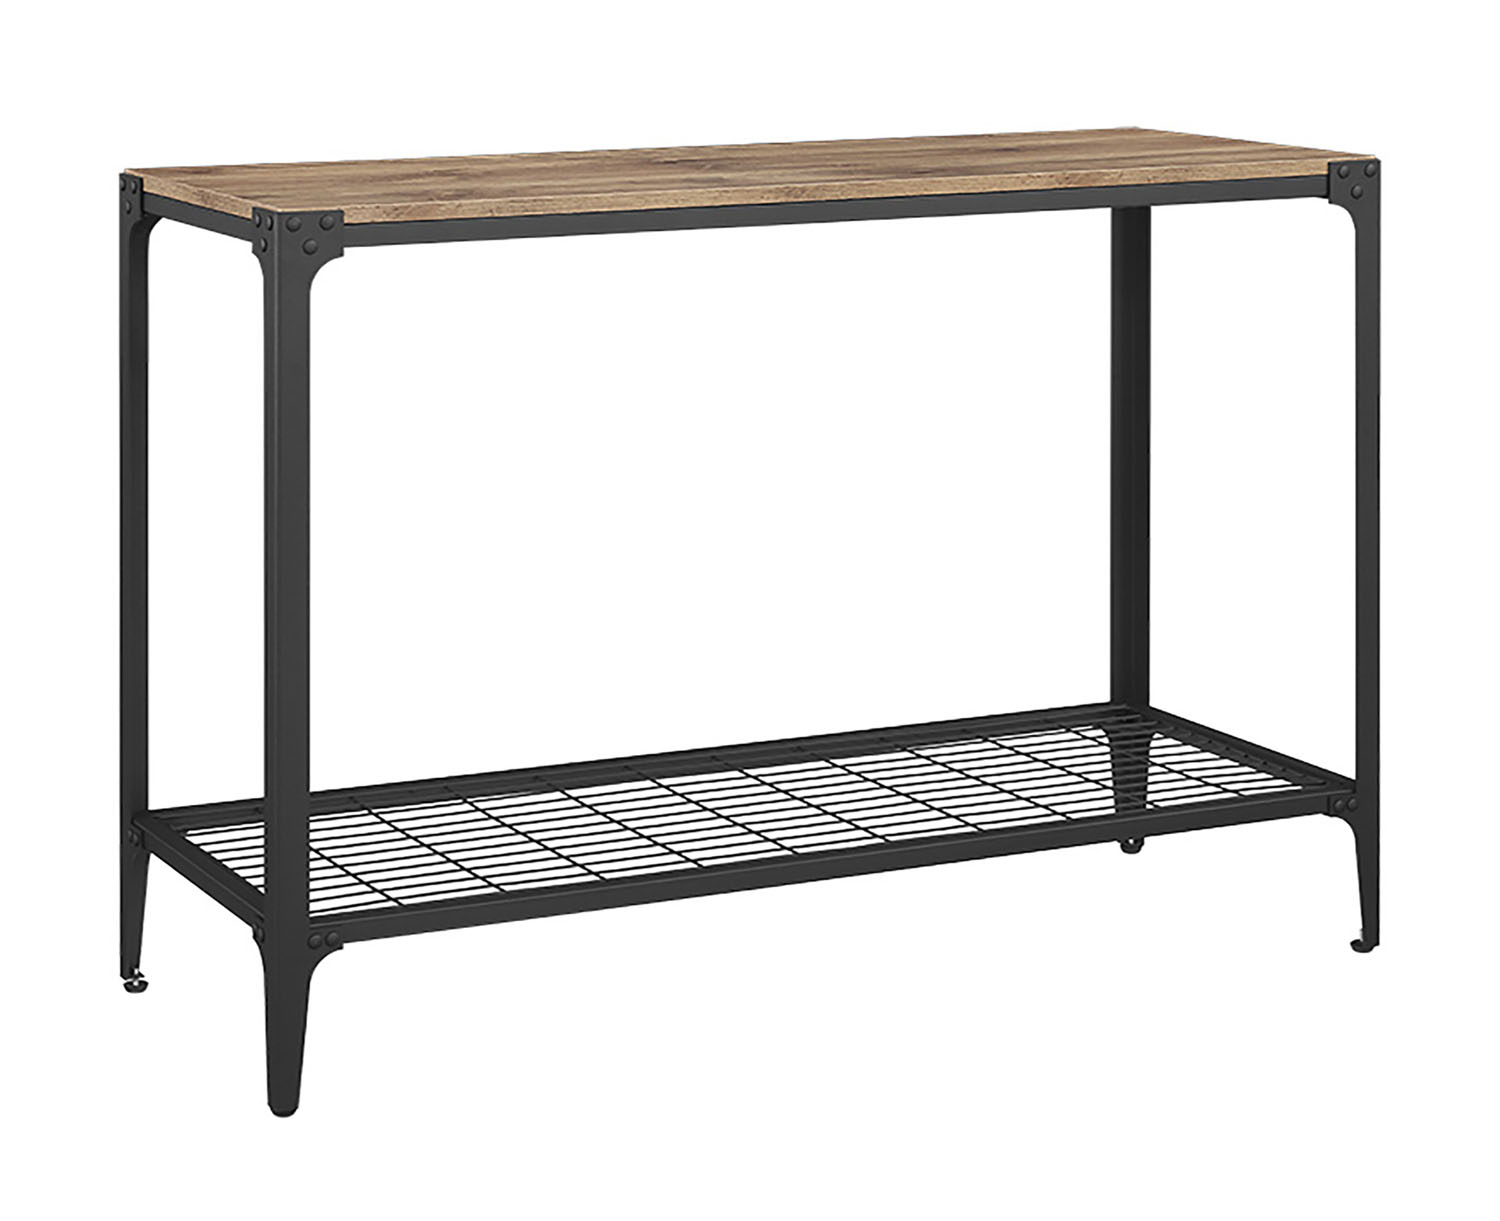 Angle Iron Rustic Wood Sofa Entry Table Barnwood